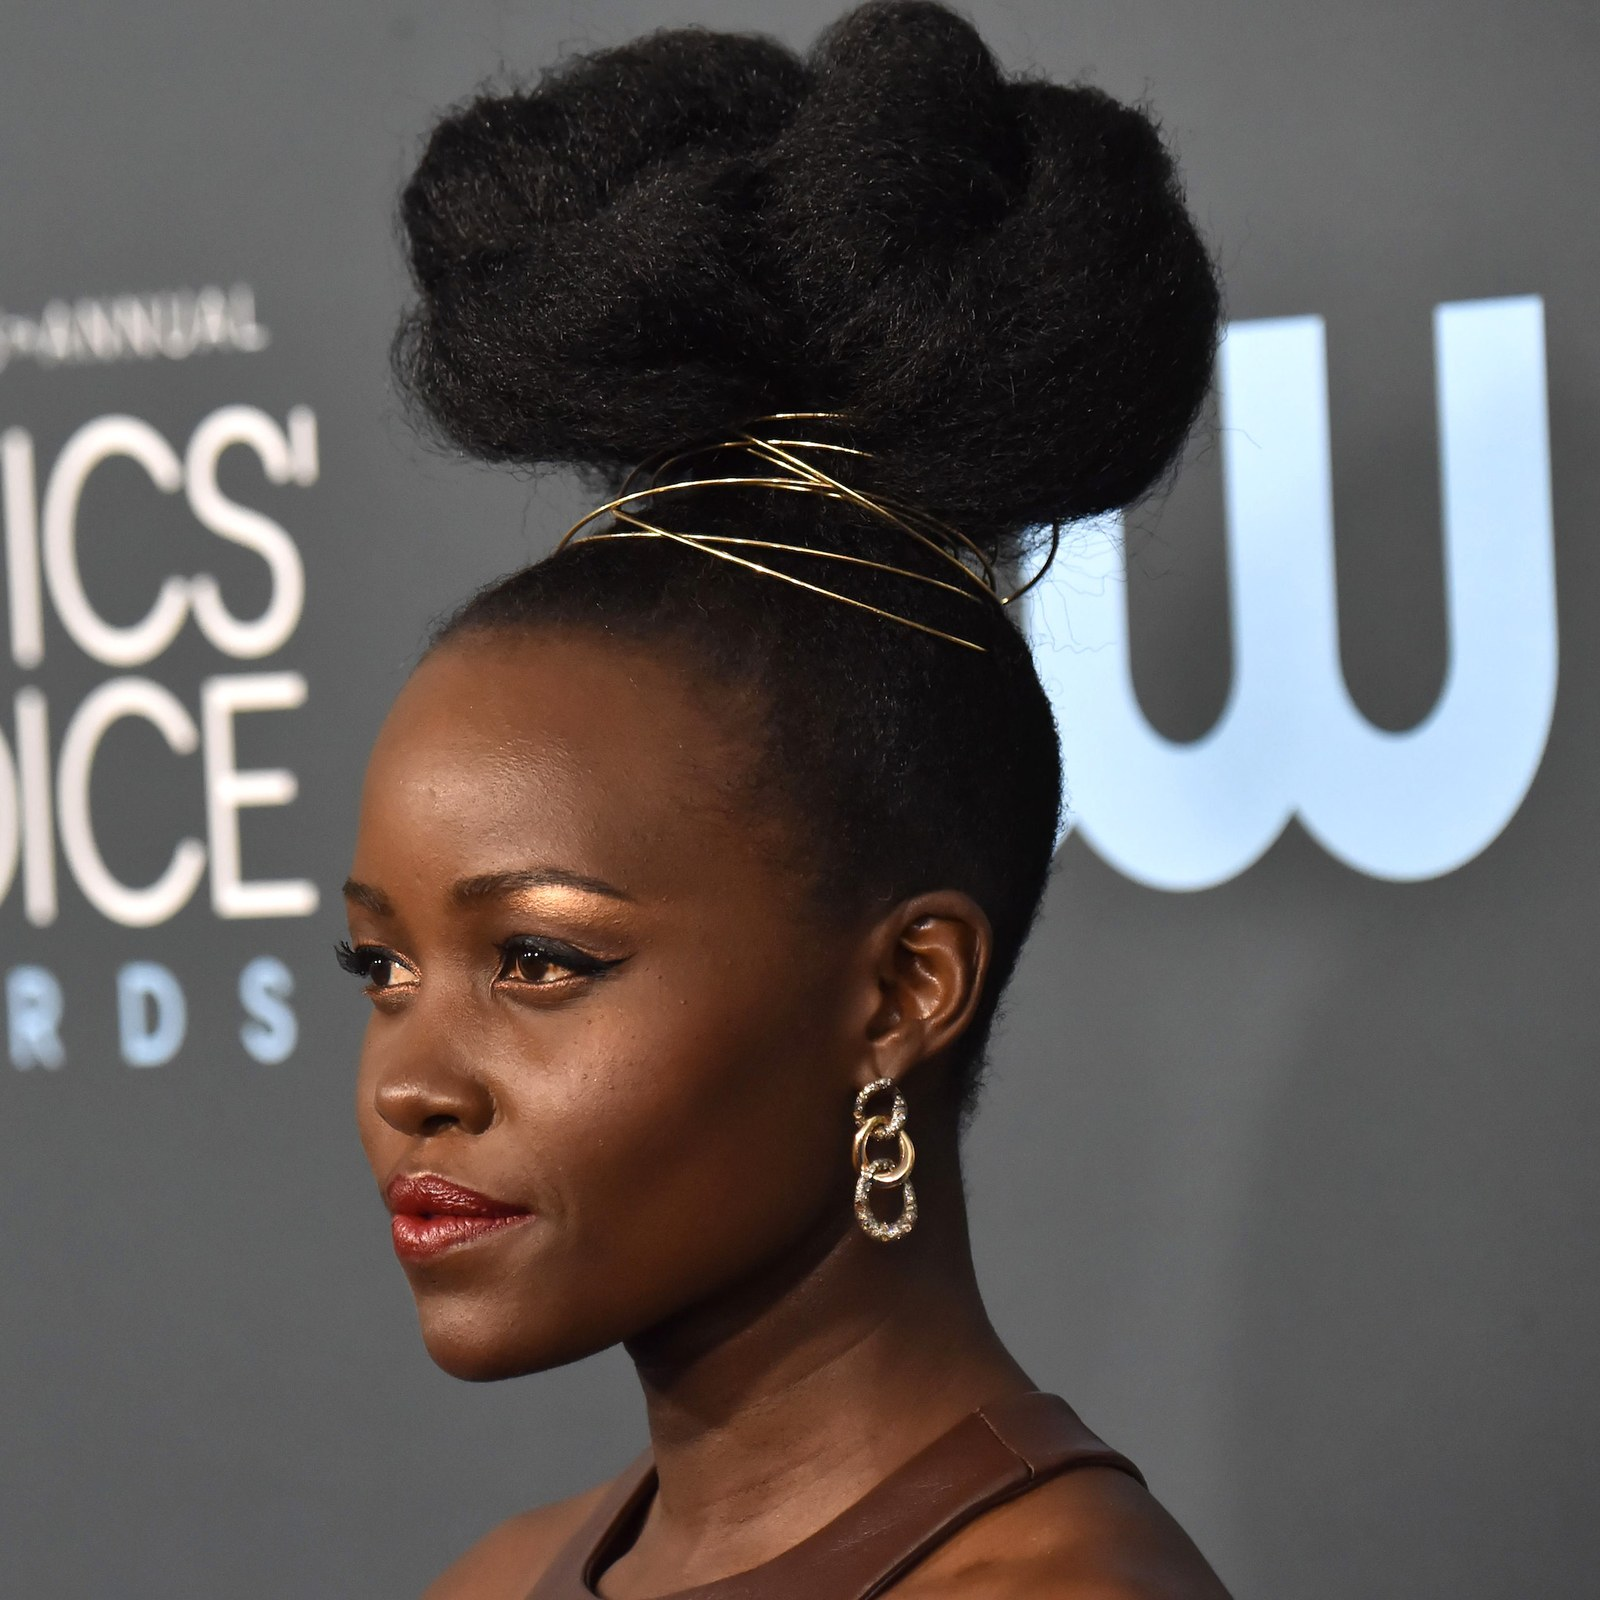 critics choice awards beauty 2020 lupita nyong'o